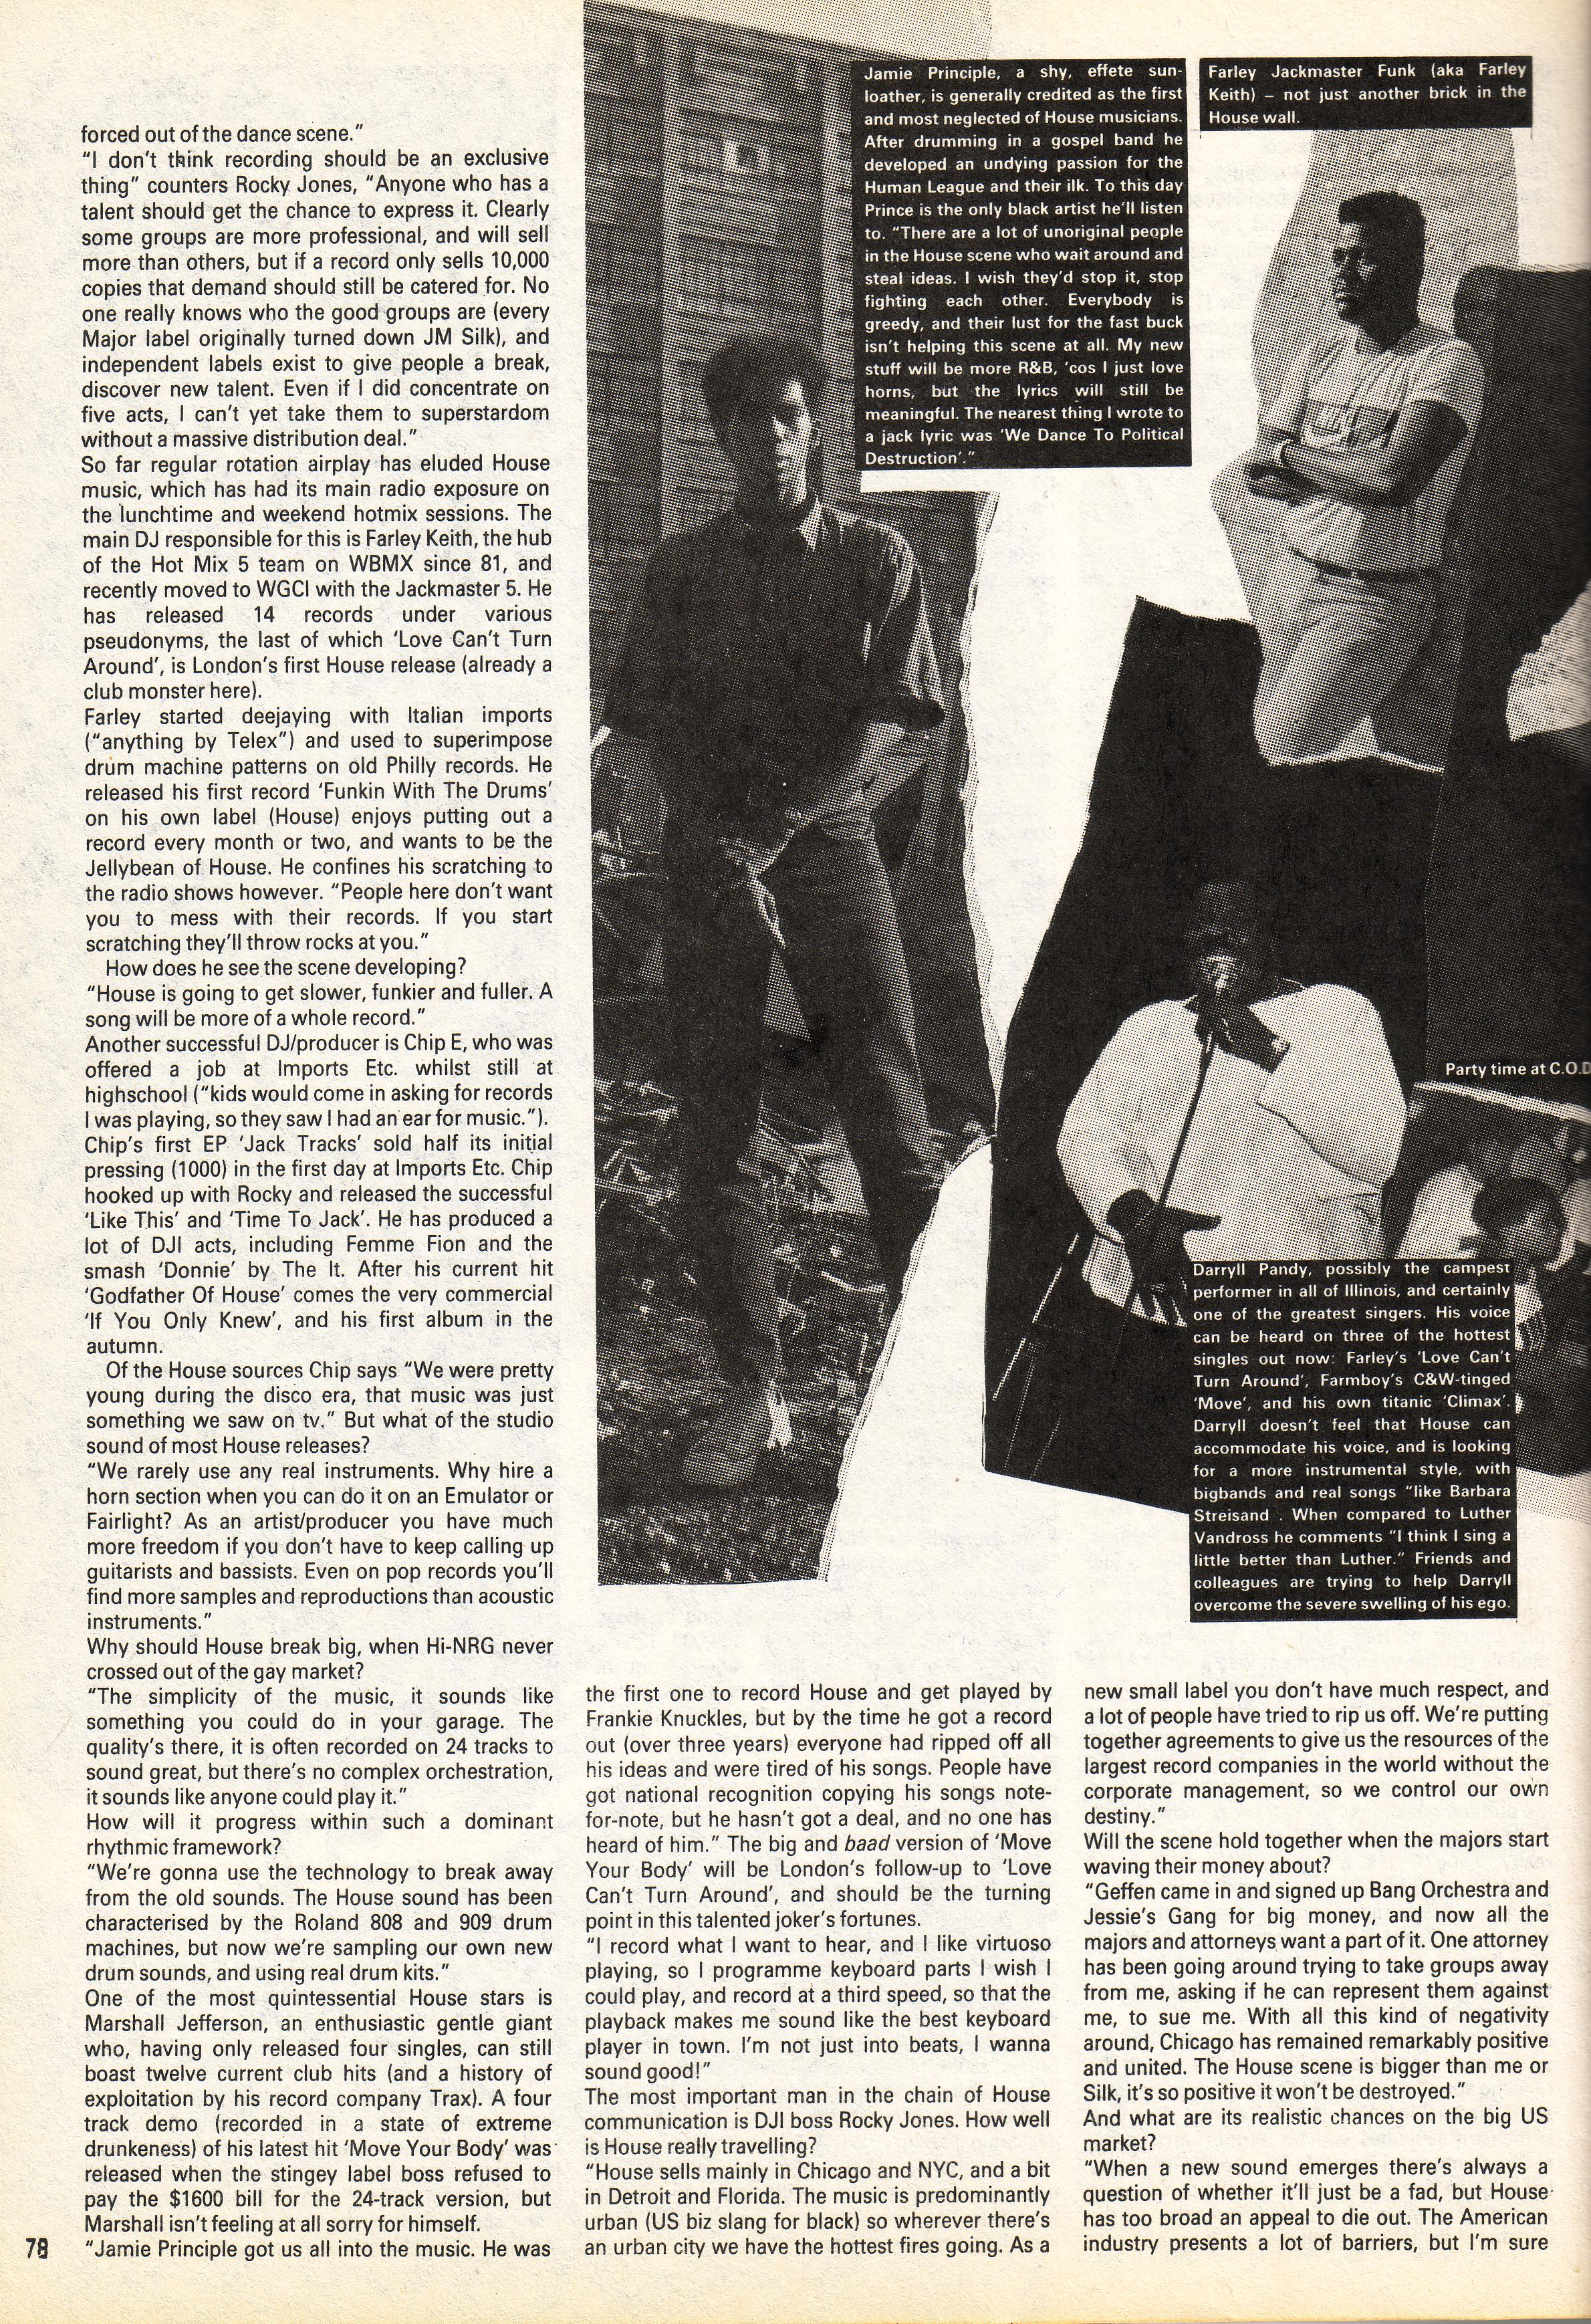 id-mag-issue-40-sep-1986-house-sound-of-chicago-3